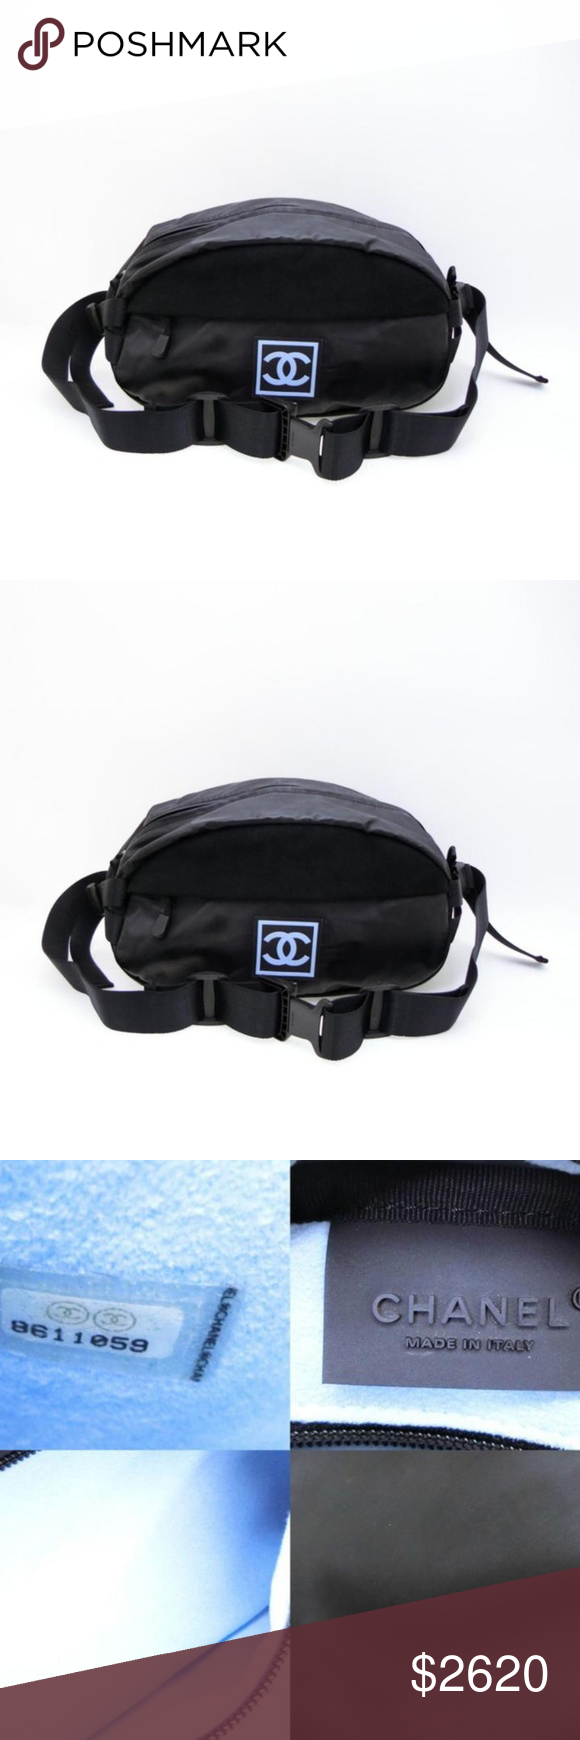 861c0a6fecc0 CC Sports Logo Bum Bag Fanny Pack 232647 OVERALL GOOD CONDITION ( 7/10 or